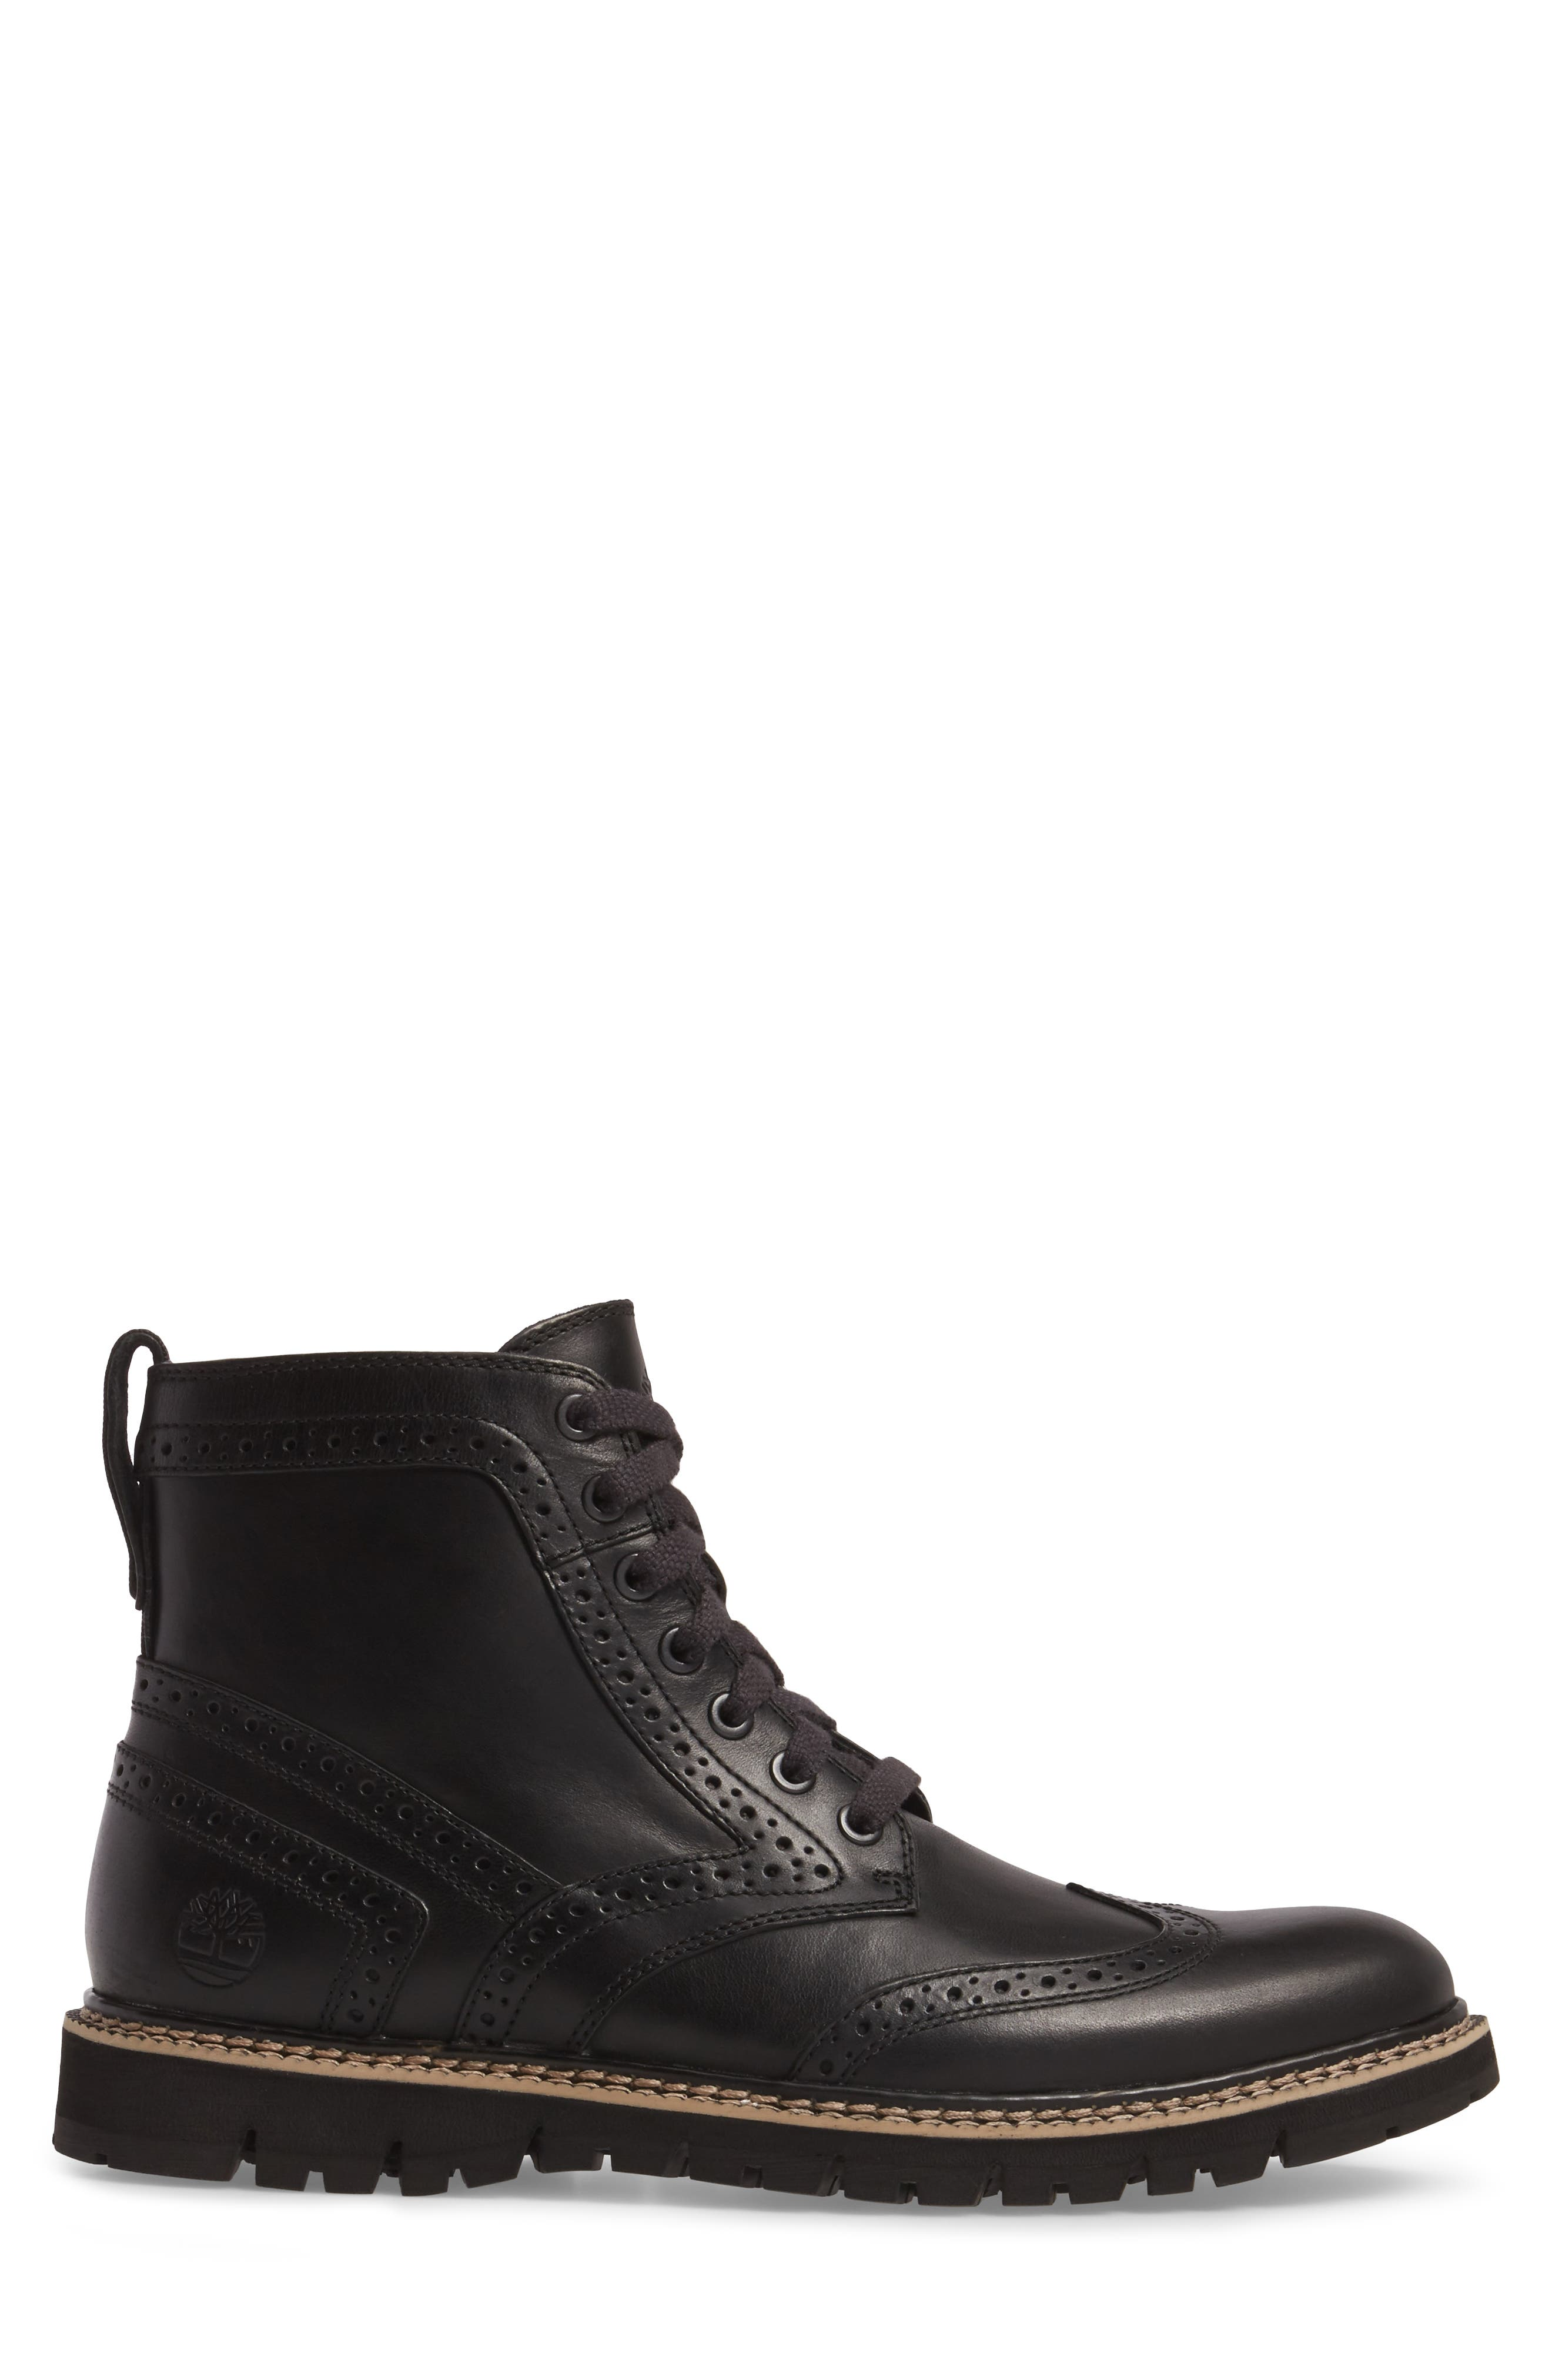 Britton Hill Wingtip Boot,                             Alternate thumbnail 5, color,